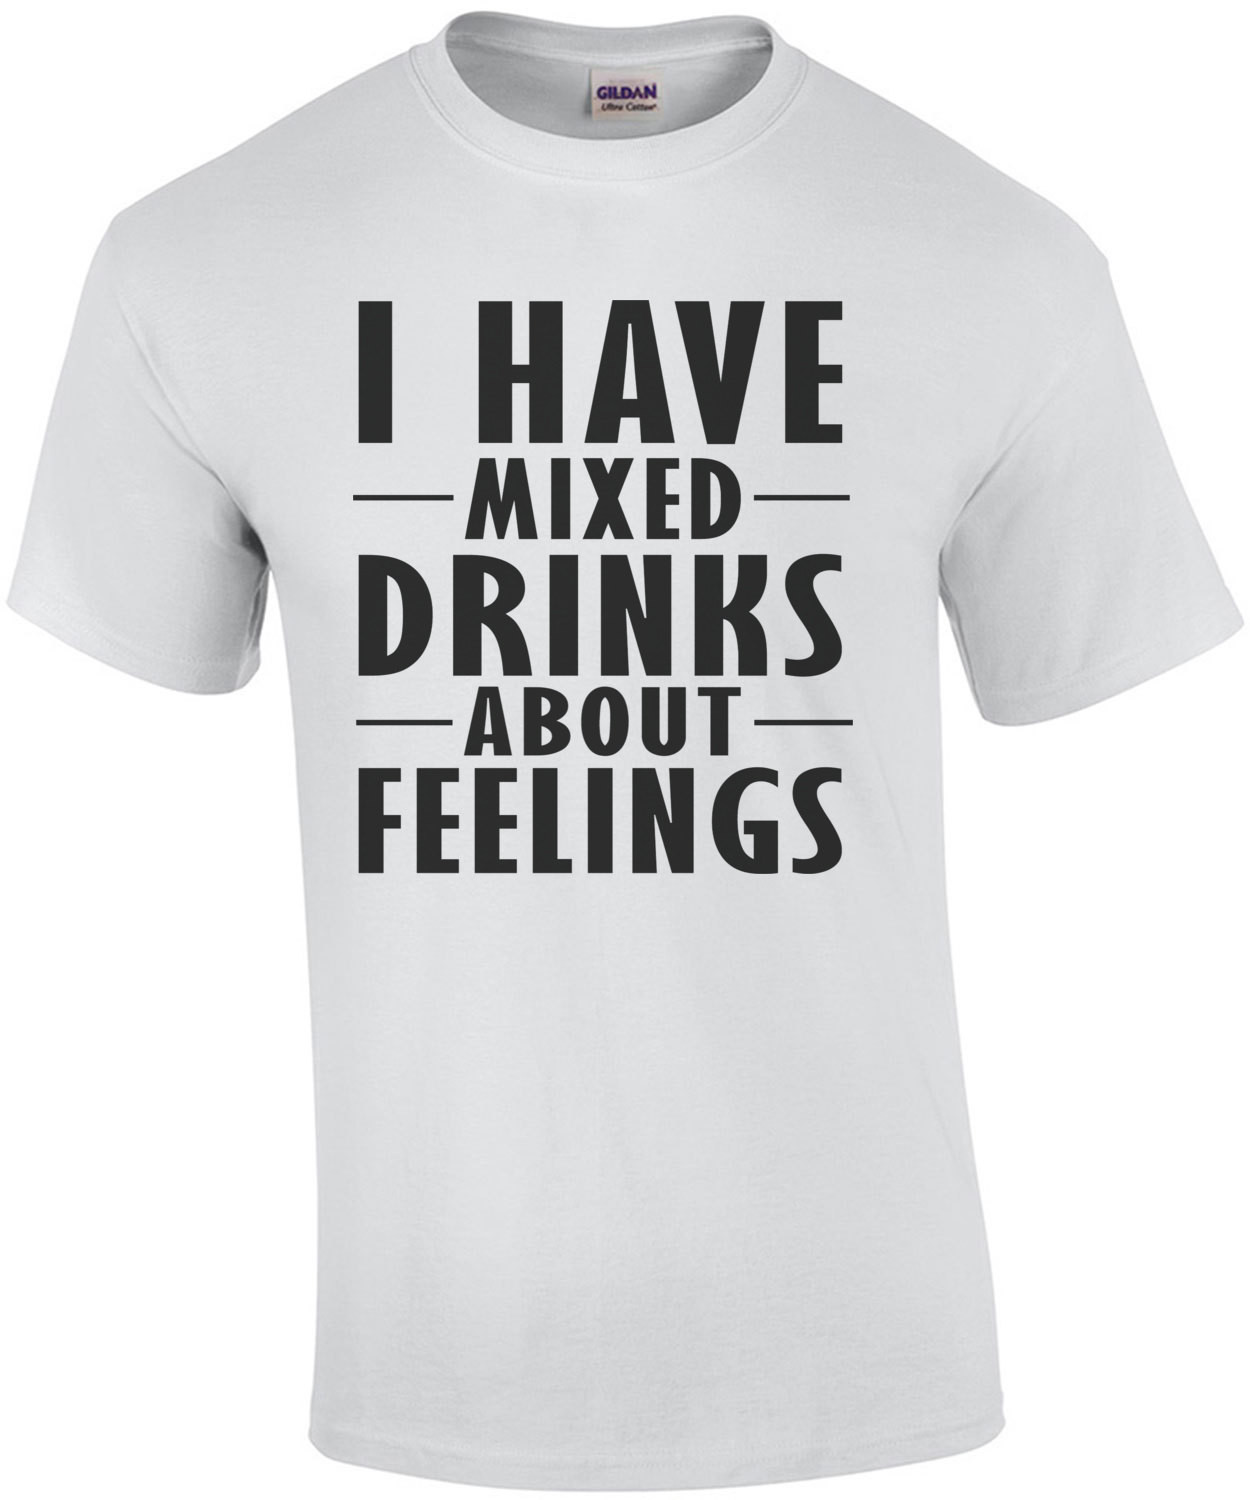 I have mixed drinks about feelings - funny drinking t-shirt